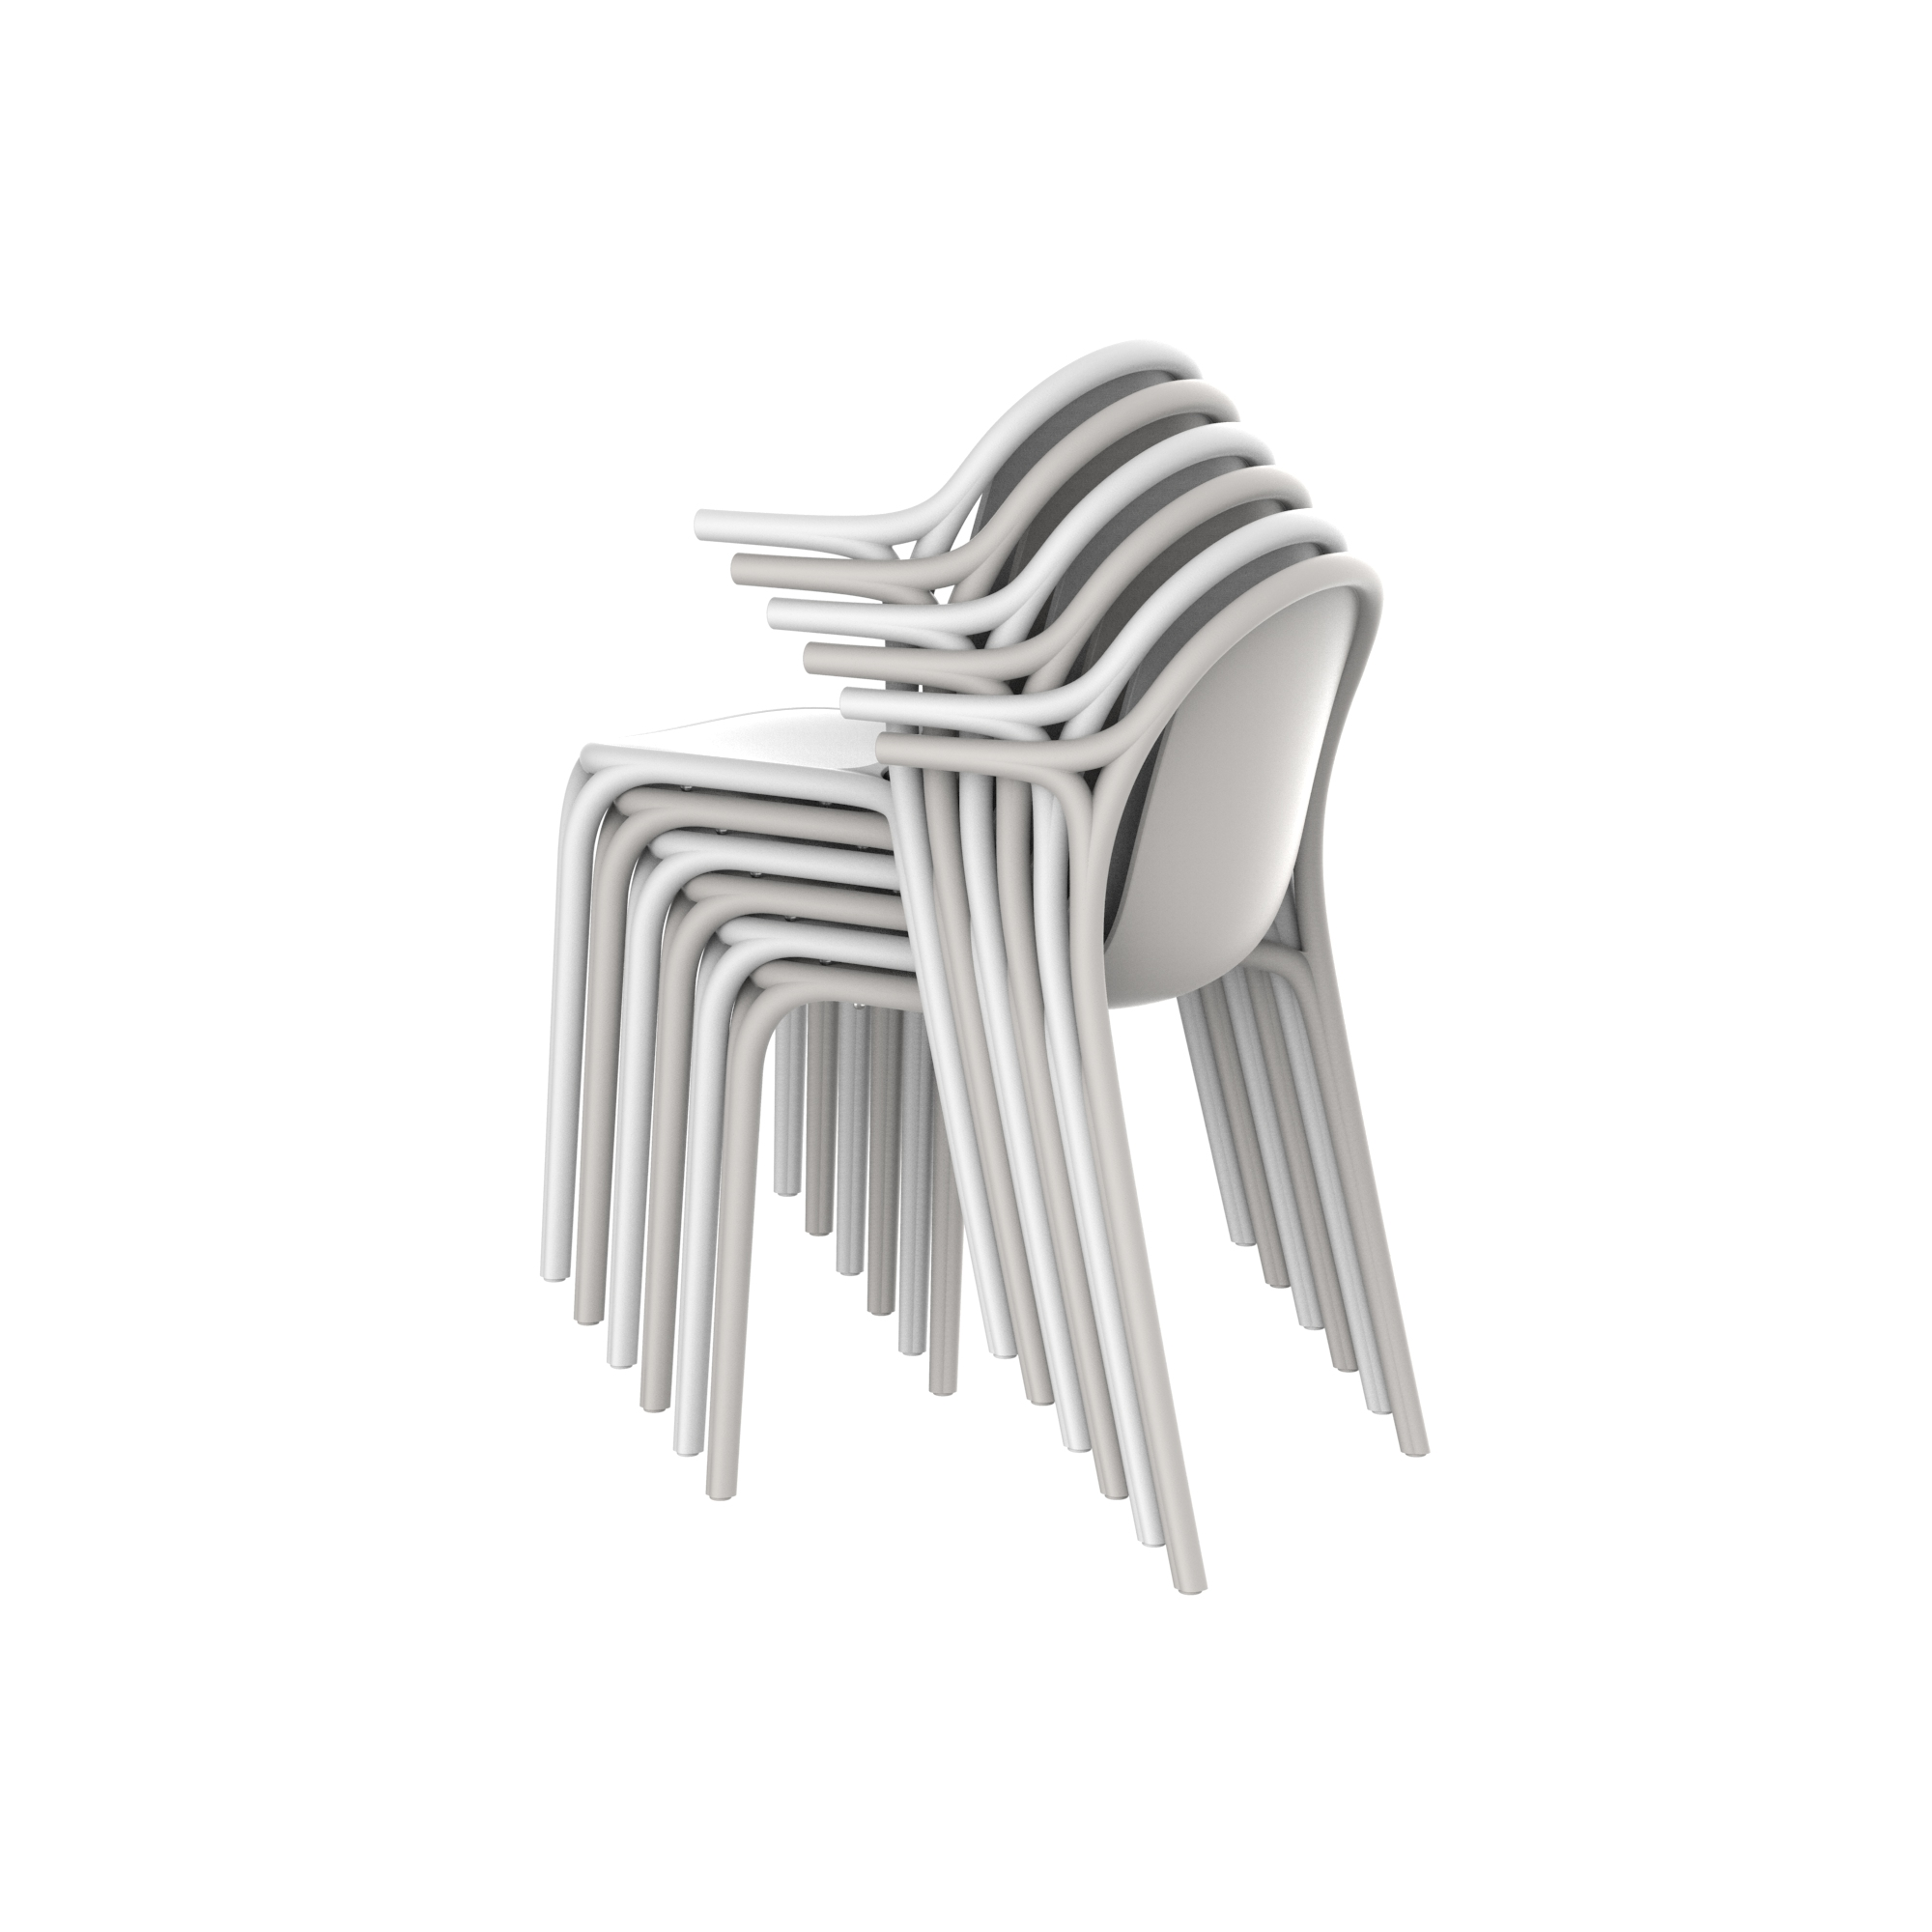 BROOKLYN_CHAIR_OUTDOOR_DESIGN_EUGENI_QUITLLET_VONDOM_SILLA_DISENO_EXTERIOR (5)